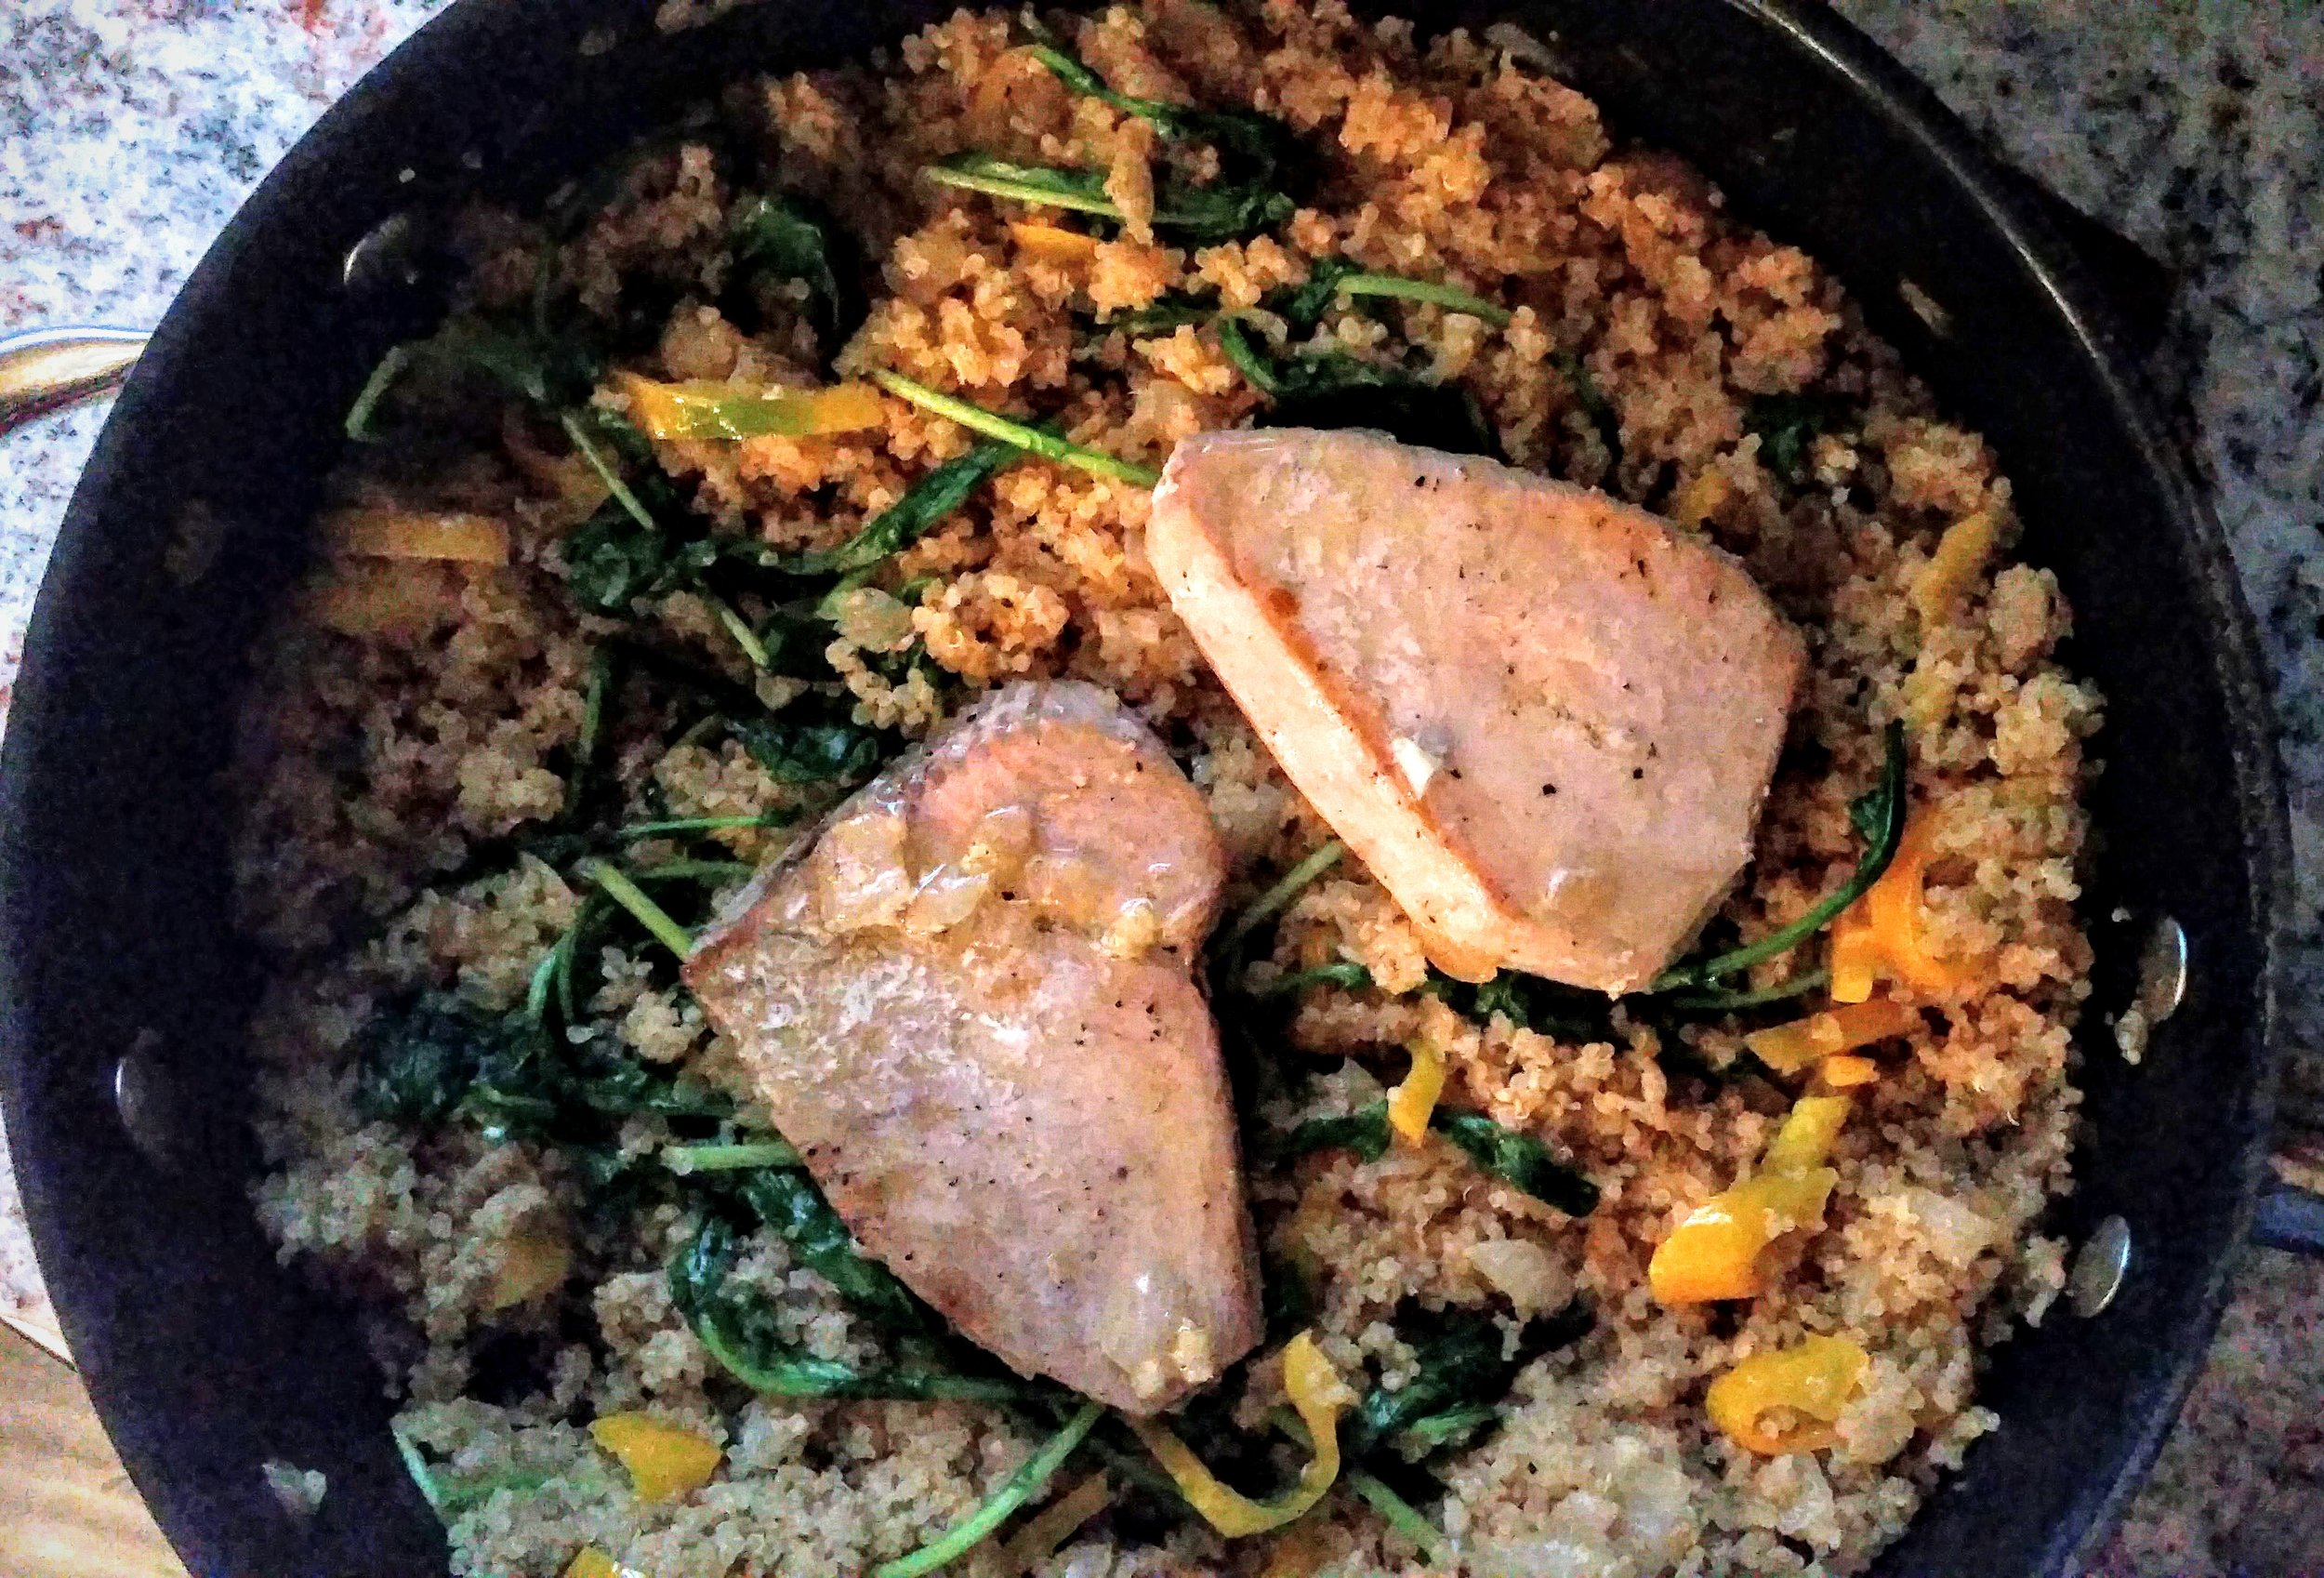 Colorful and veggie filled quinoa makes the perfect bed for Yellowfin Tuna steaks.